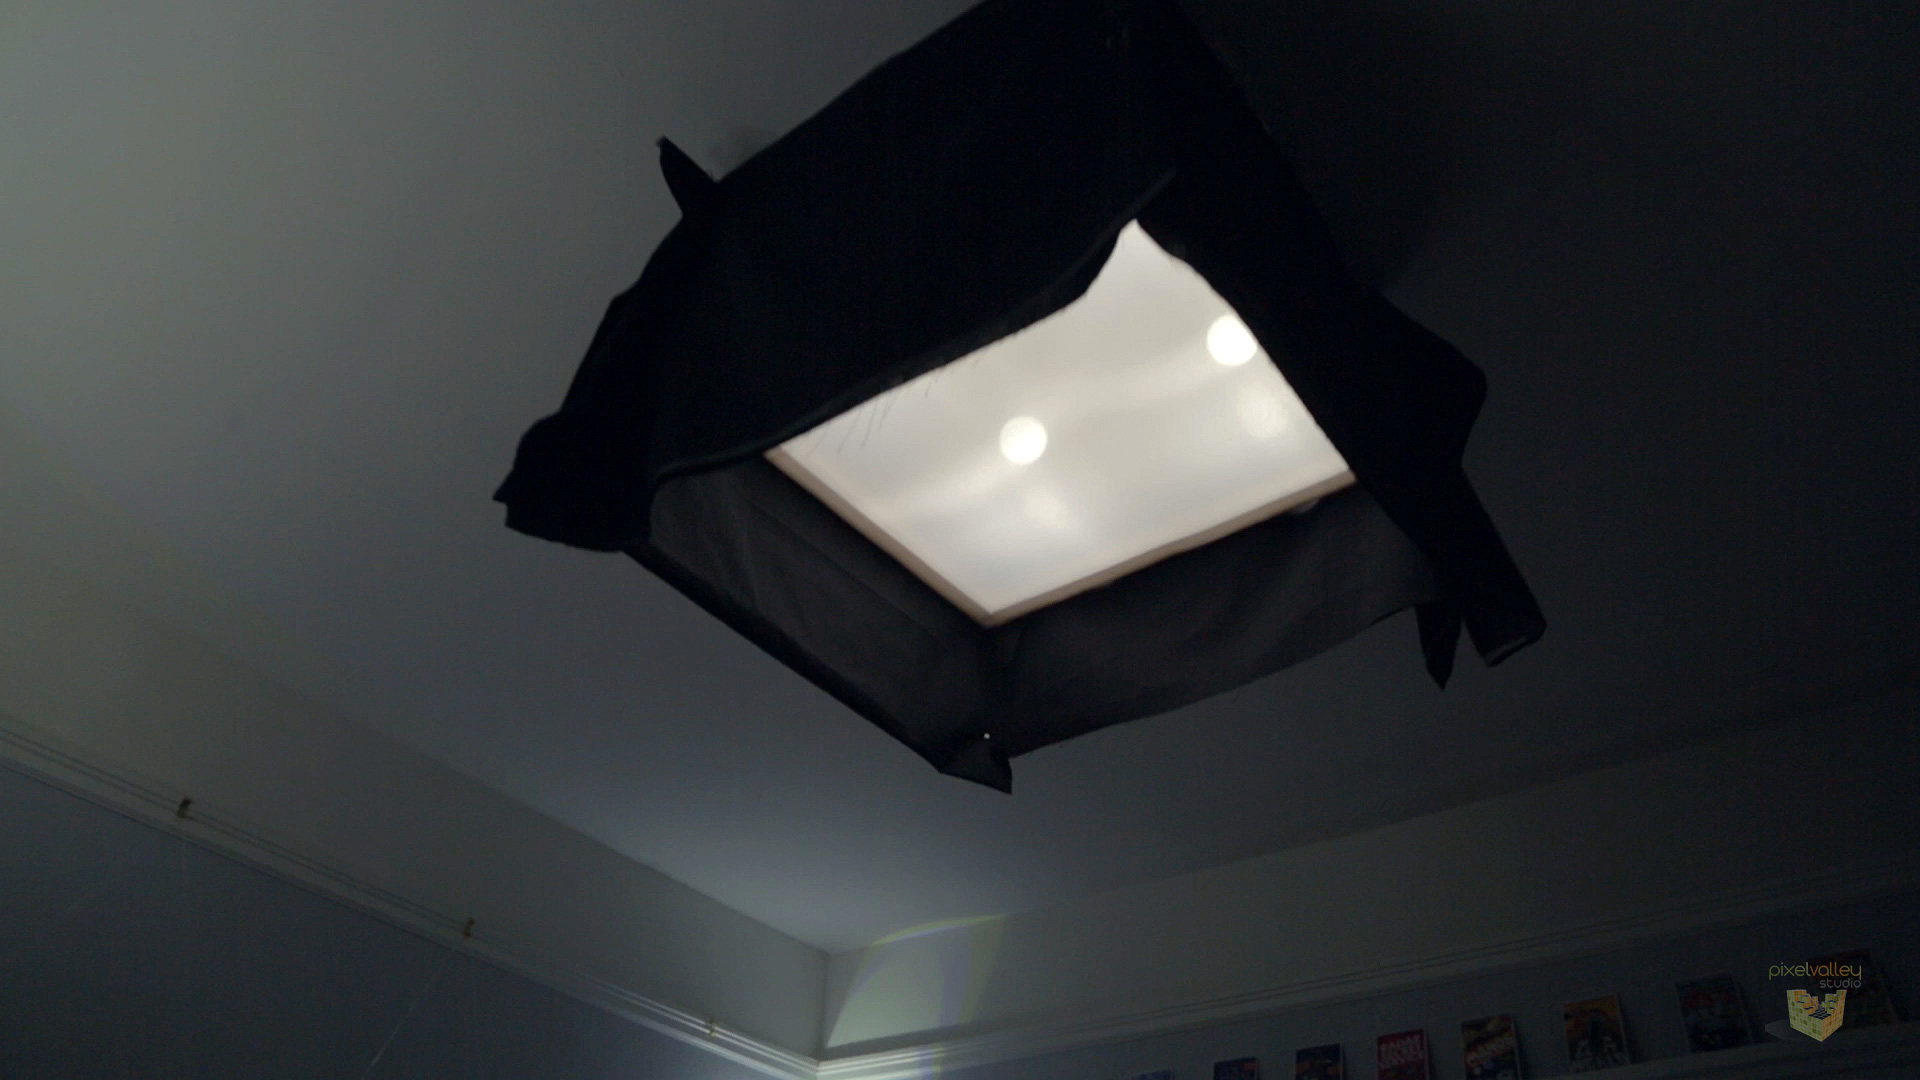 Our box ceiling light with showcard sides and a duvetyne skirt to focus a soft beam of light straight down.